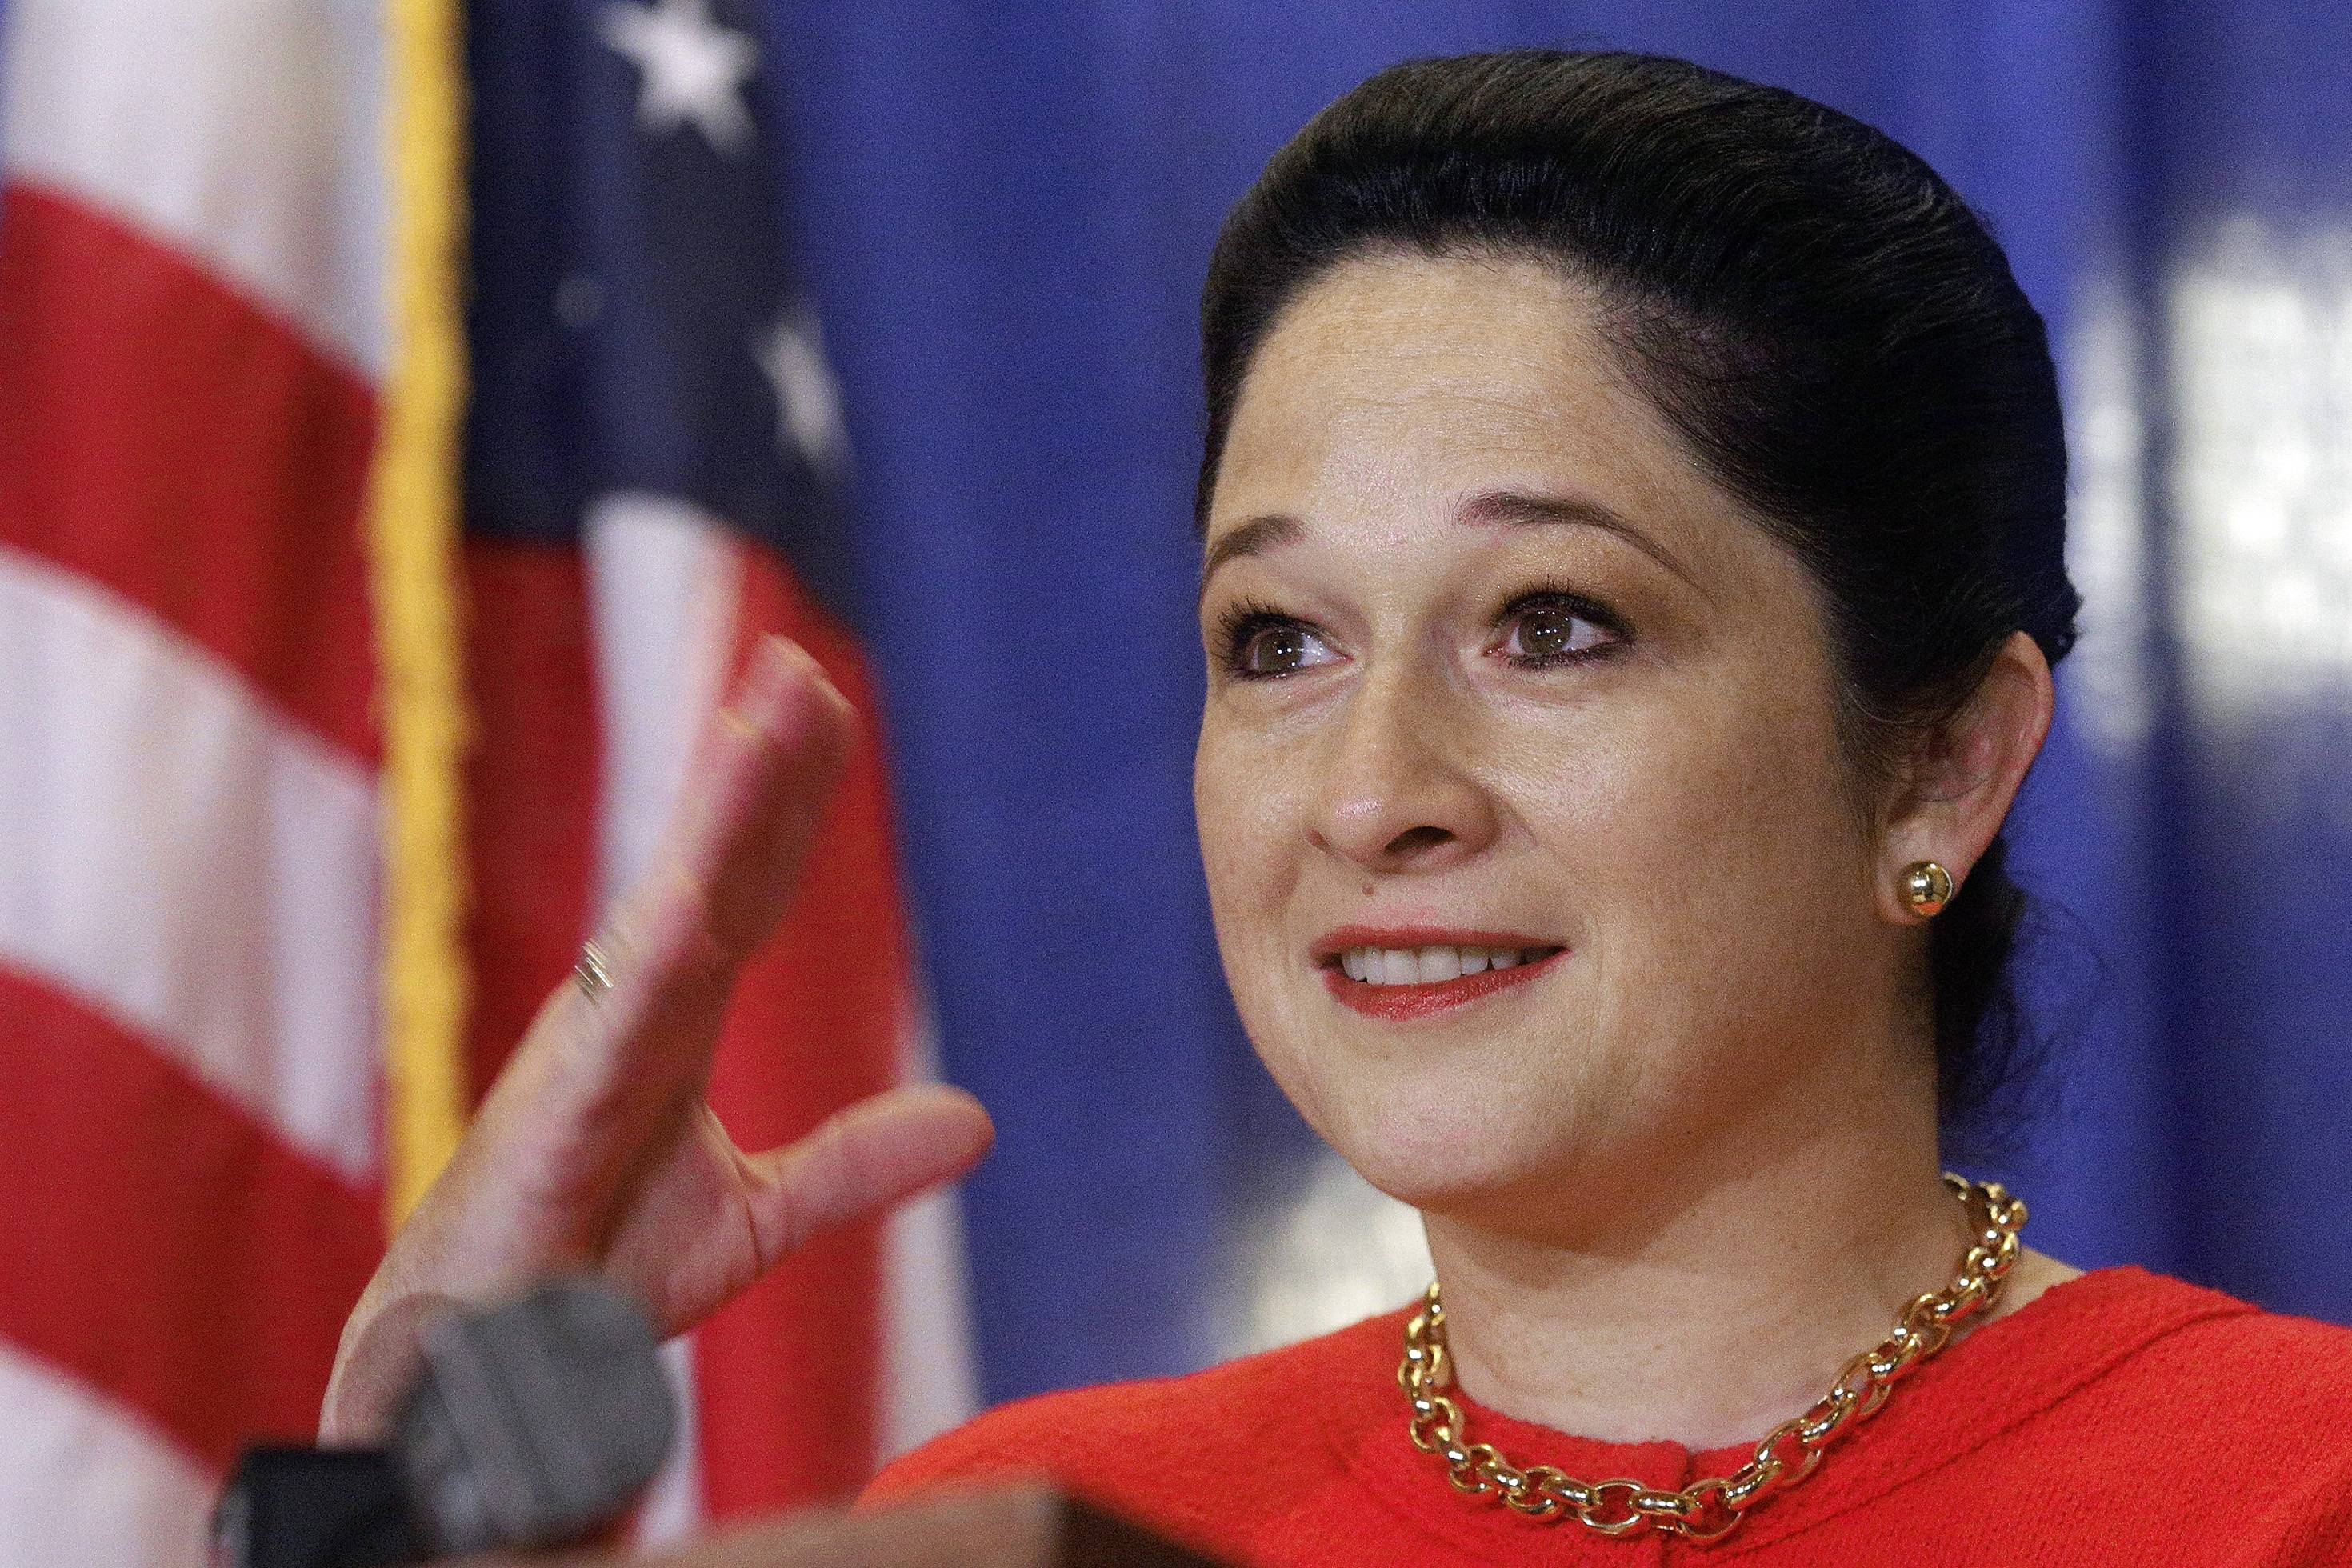 Illinois Comptroller Susana Mendoza urged Gov. Bruce Rauner to act quickly to use his new bonding authority to help pay down the state's backlog of unpaid bills.